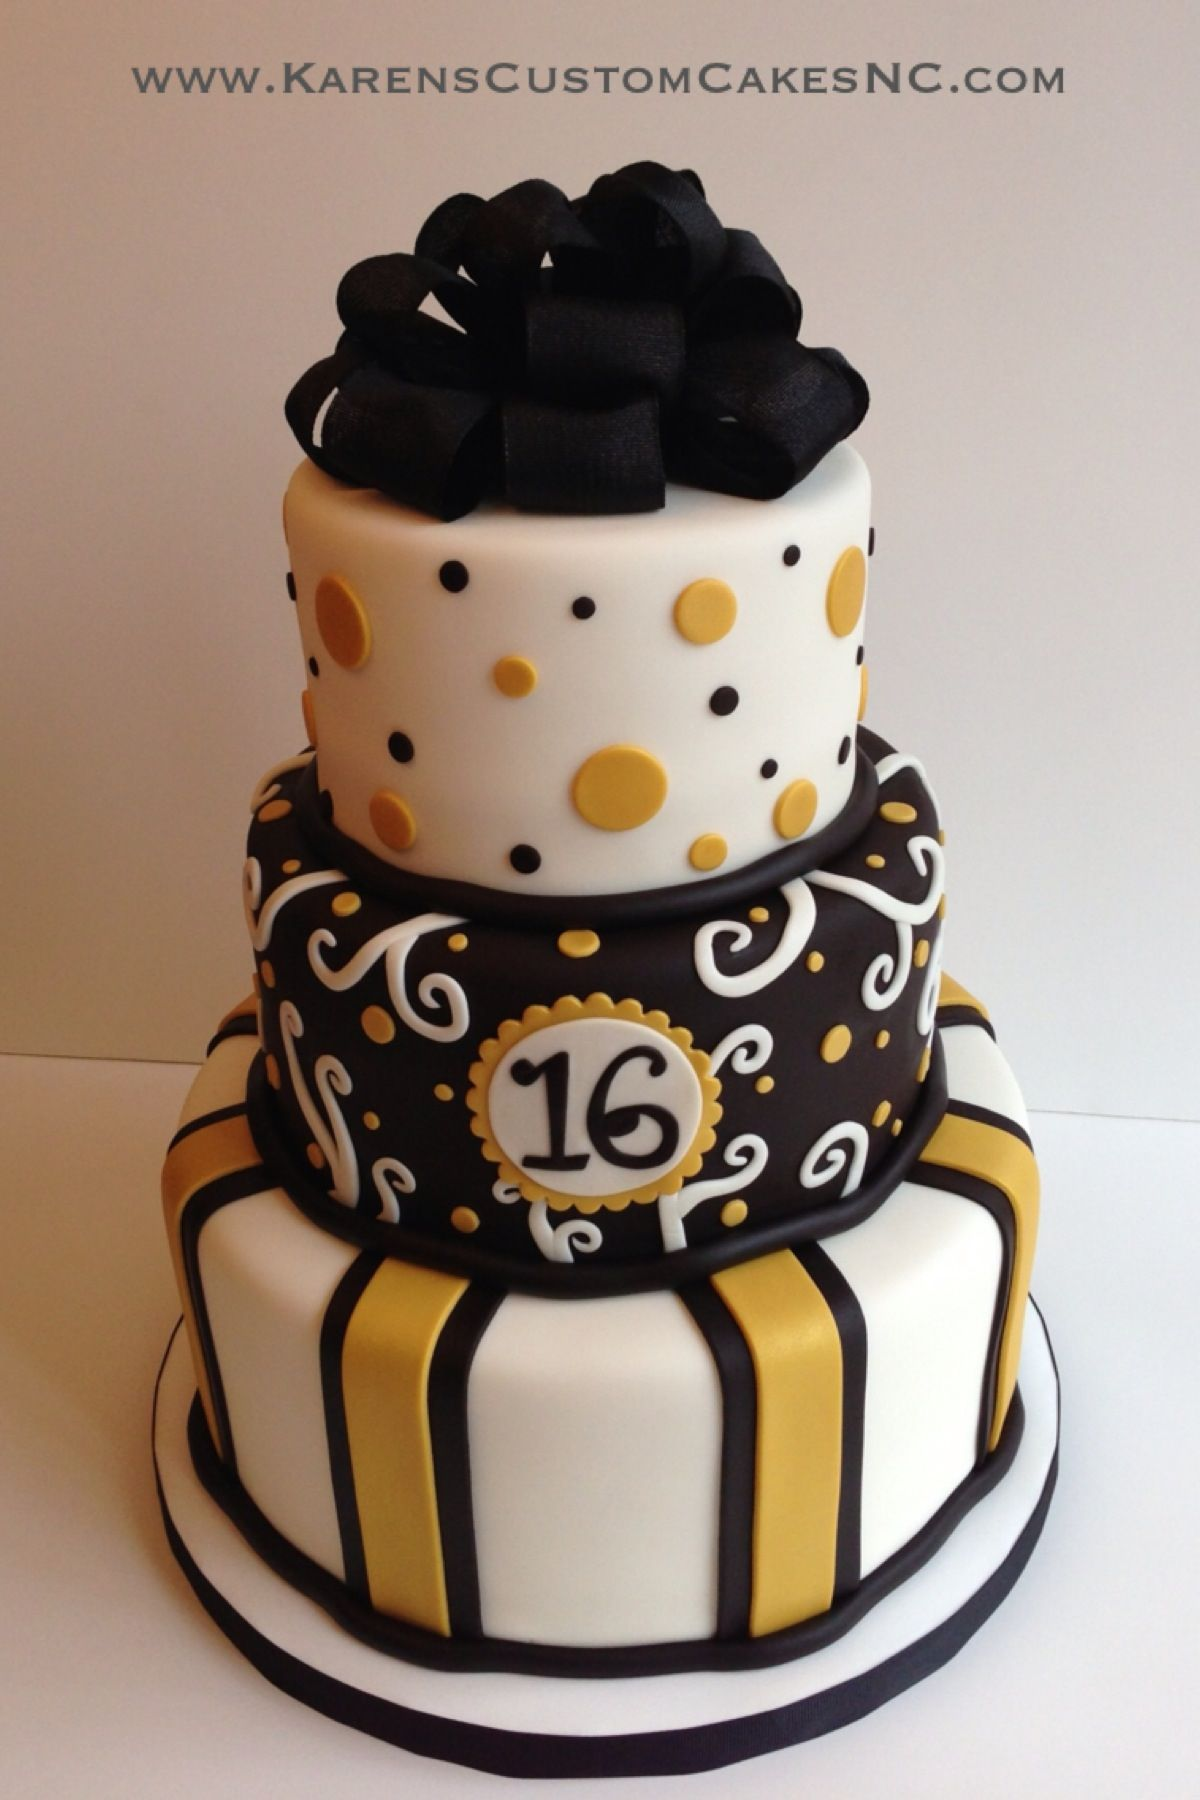 3 Tier All Fondant Cake 10 8 6 White Gold And Black Real